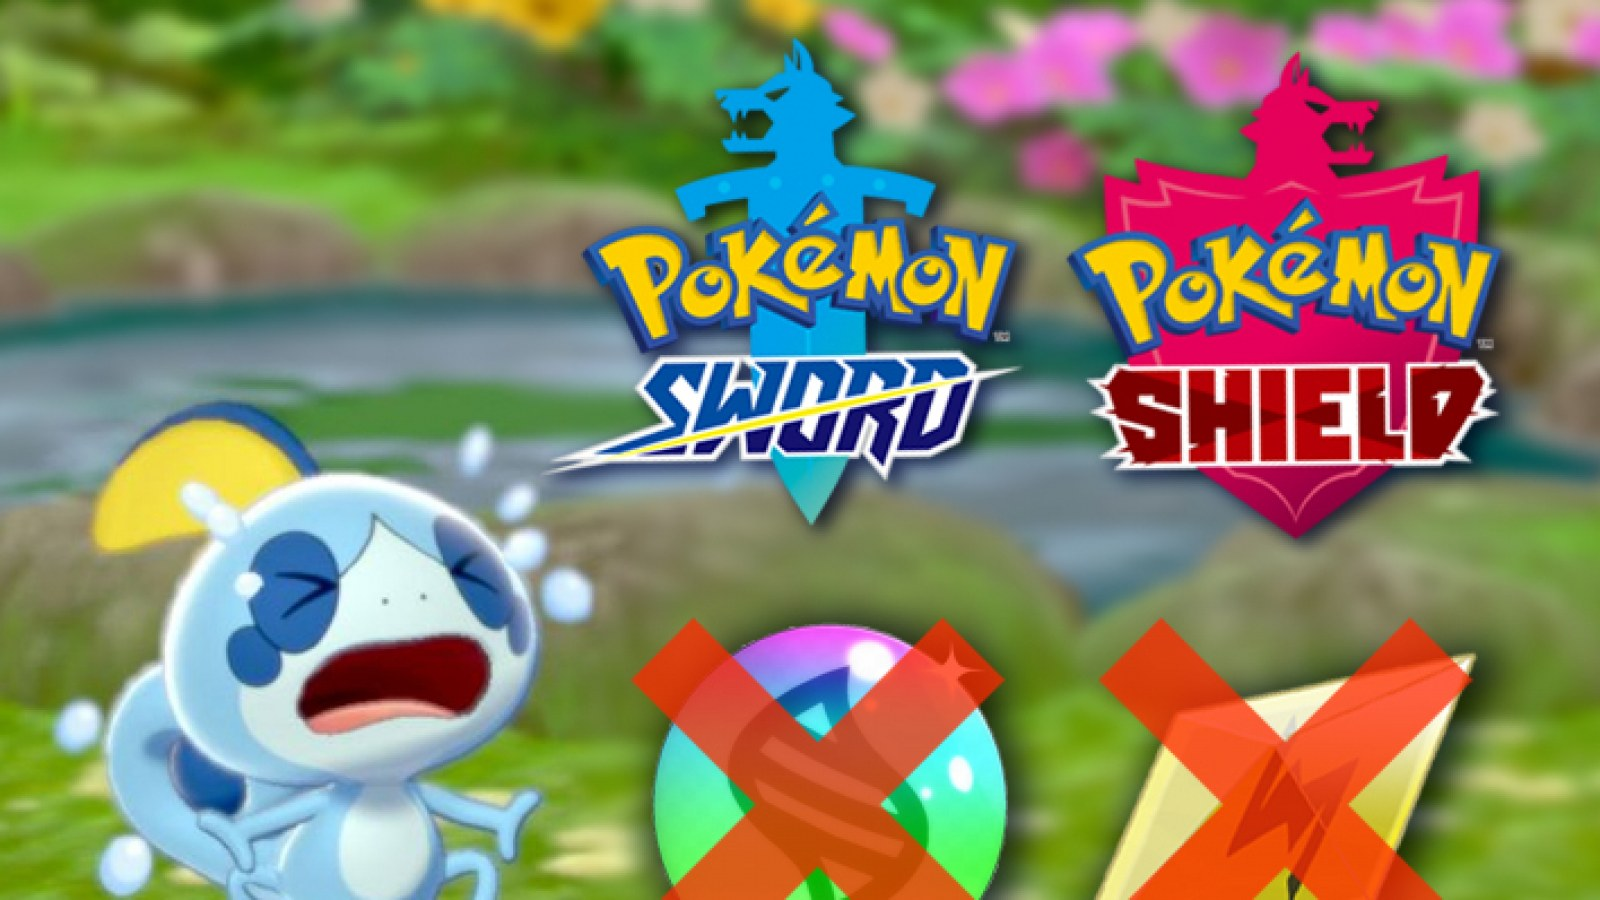 Pokemon Sword And Shield Producer Confirms Mega Evolutions And Z